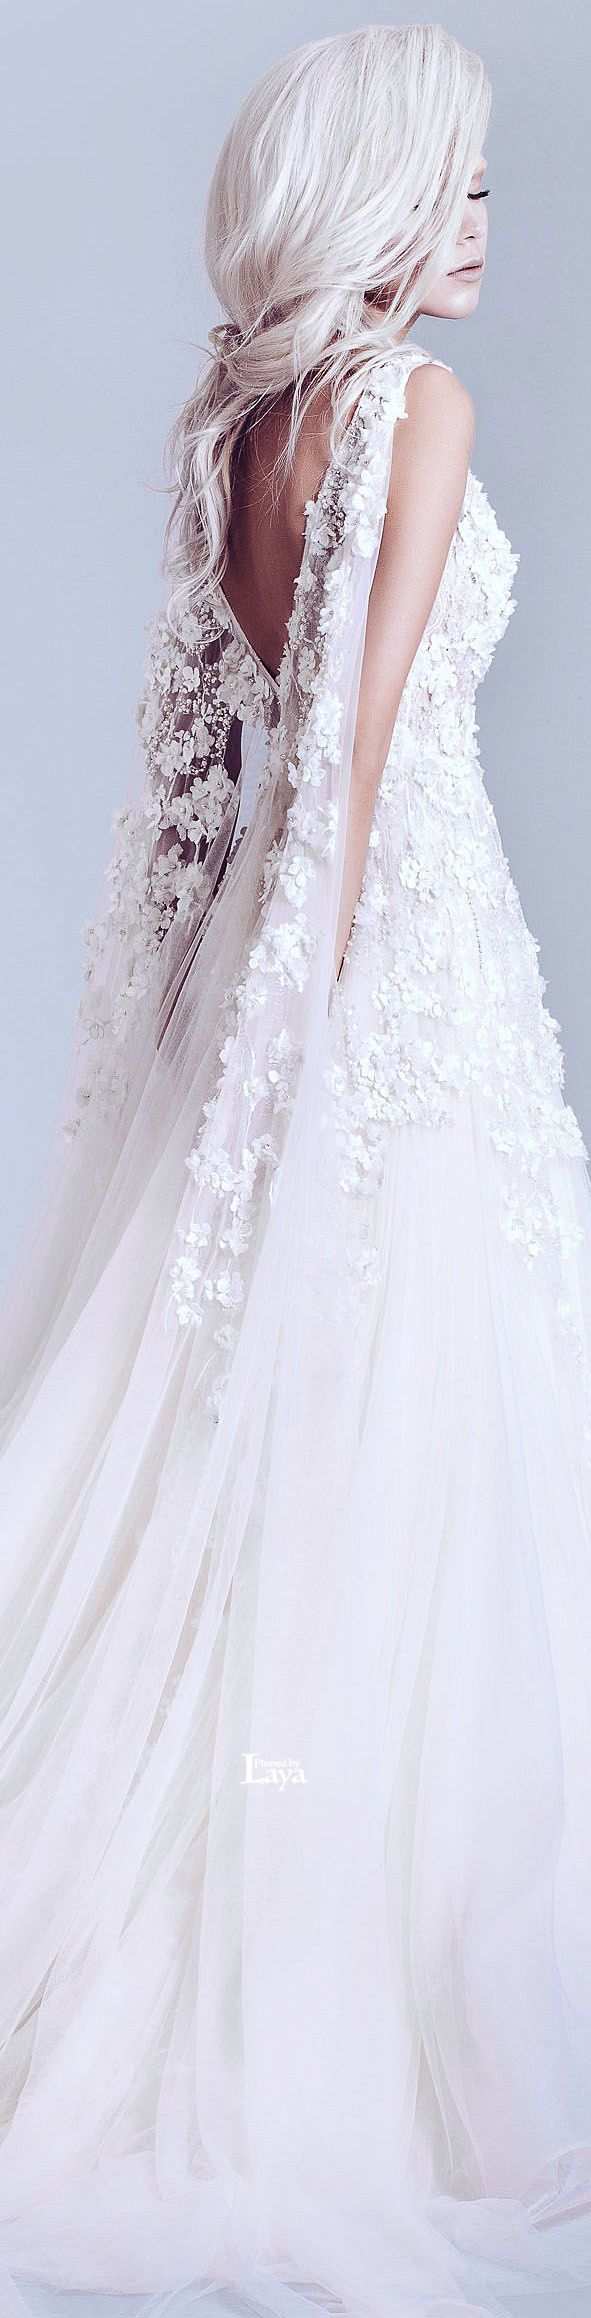 ~ white fairytale gown ~